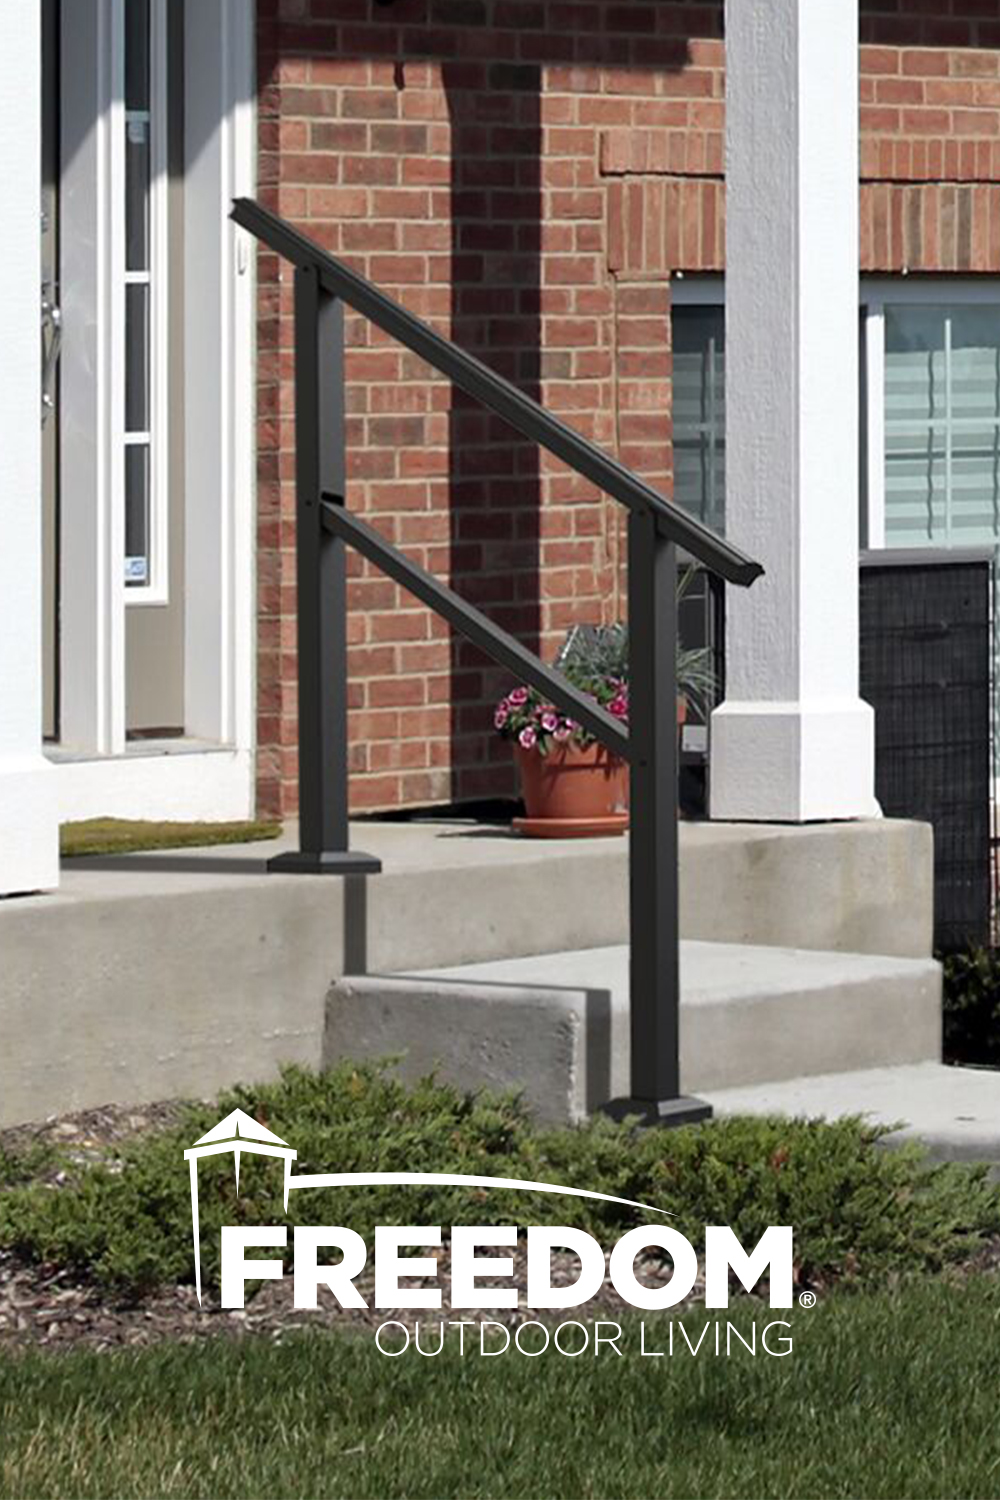 Freedom Assembled 4 159 Ft X 3 45 Ft Heathrow Matte Black | Lowes Exterior Handrails For Steps | Concrete | Aluminum Handrail Kit | Deck Stair | Wrought Iron | Baluster